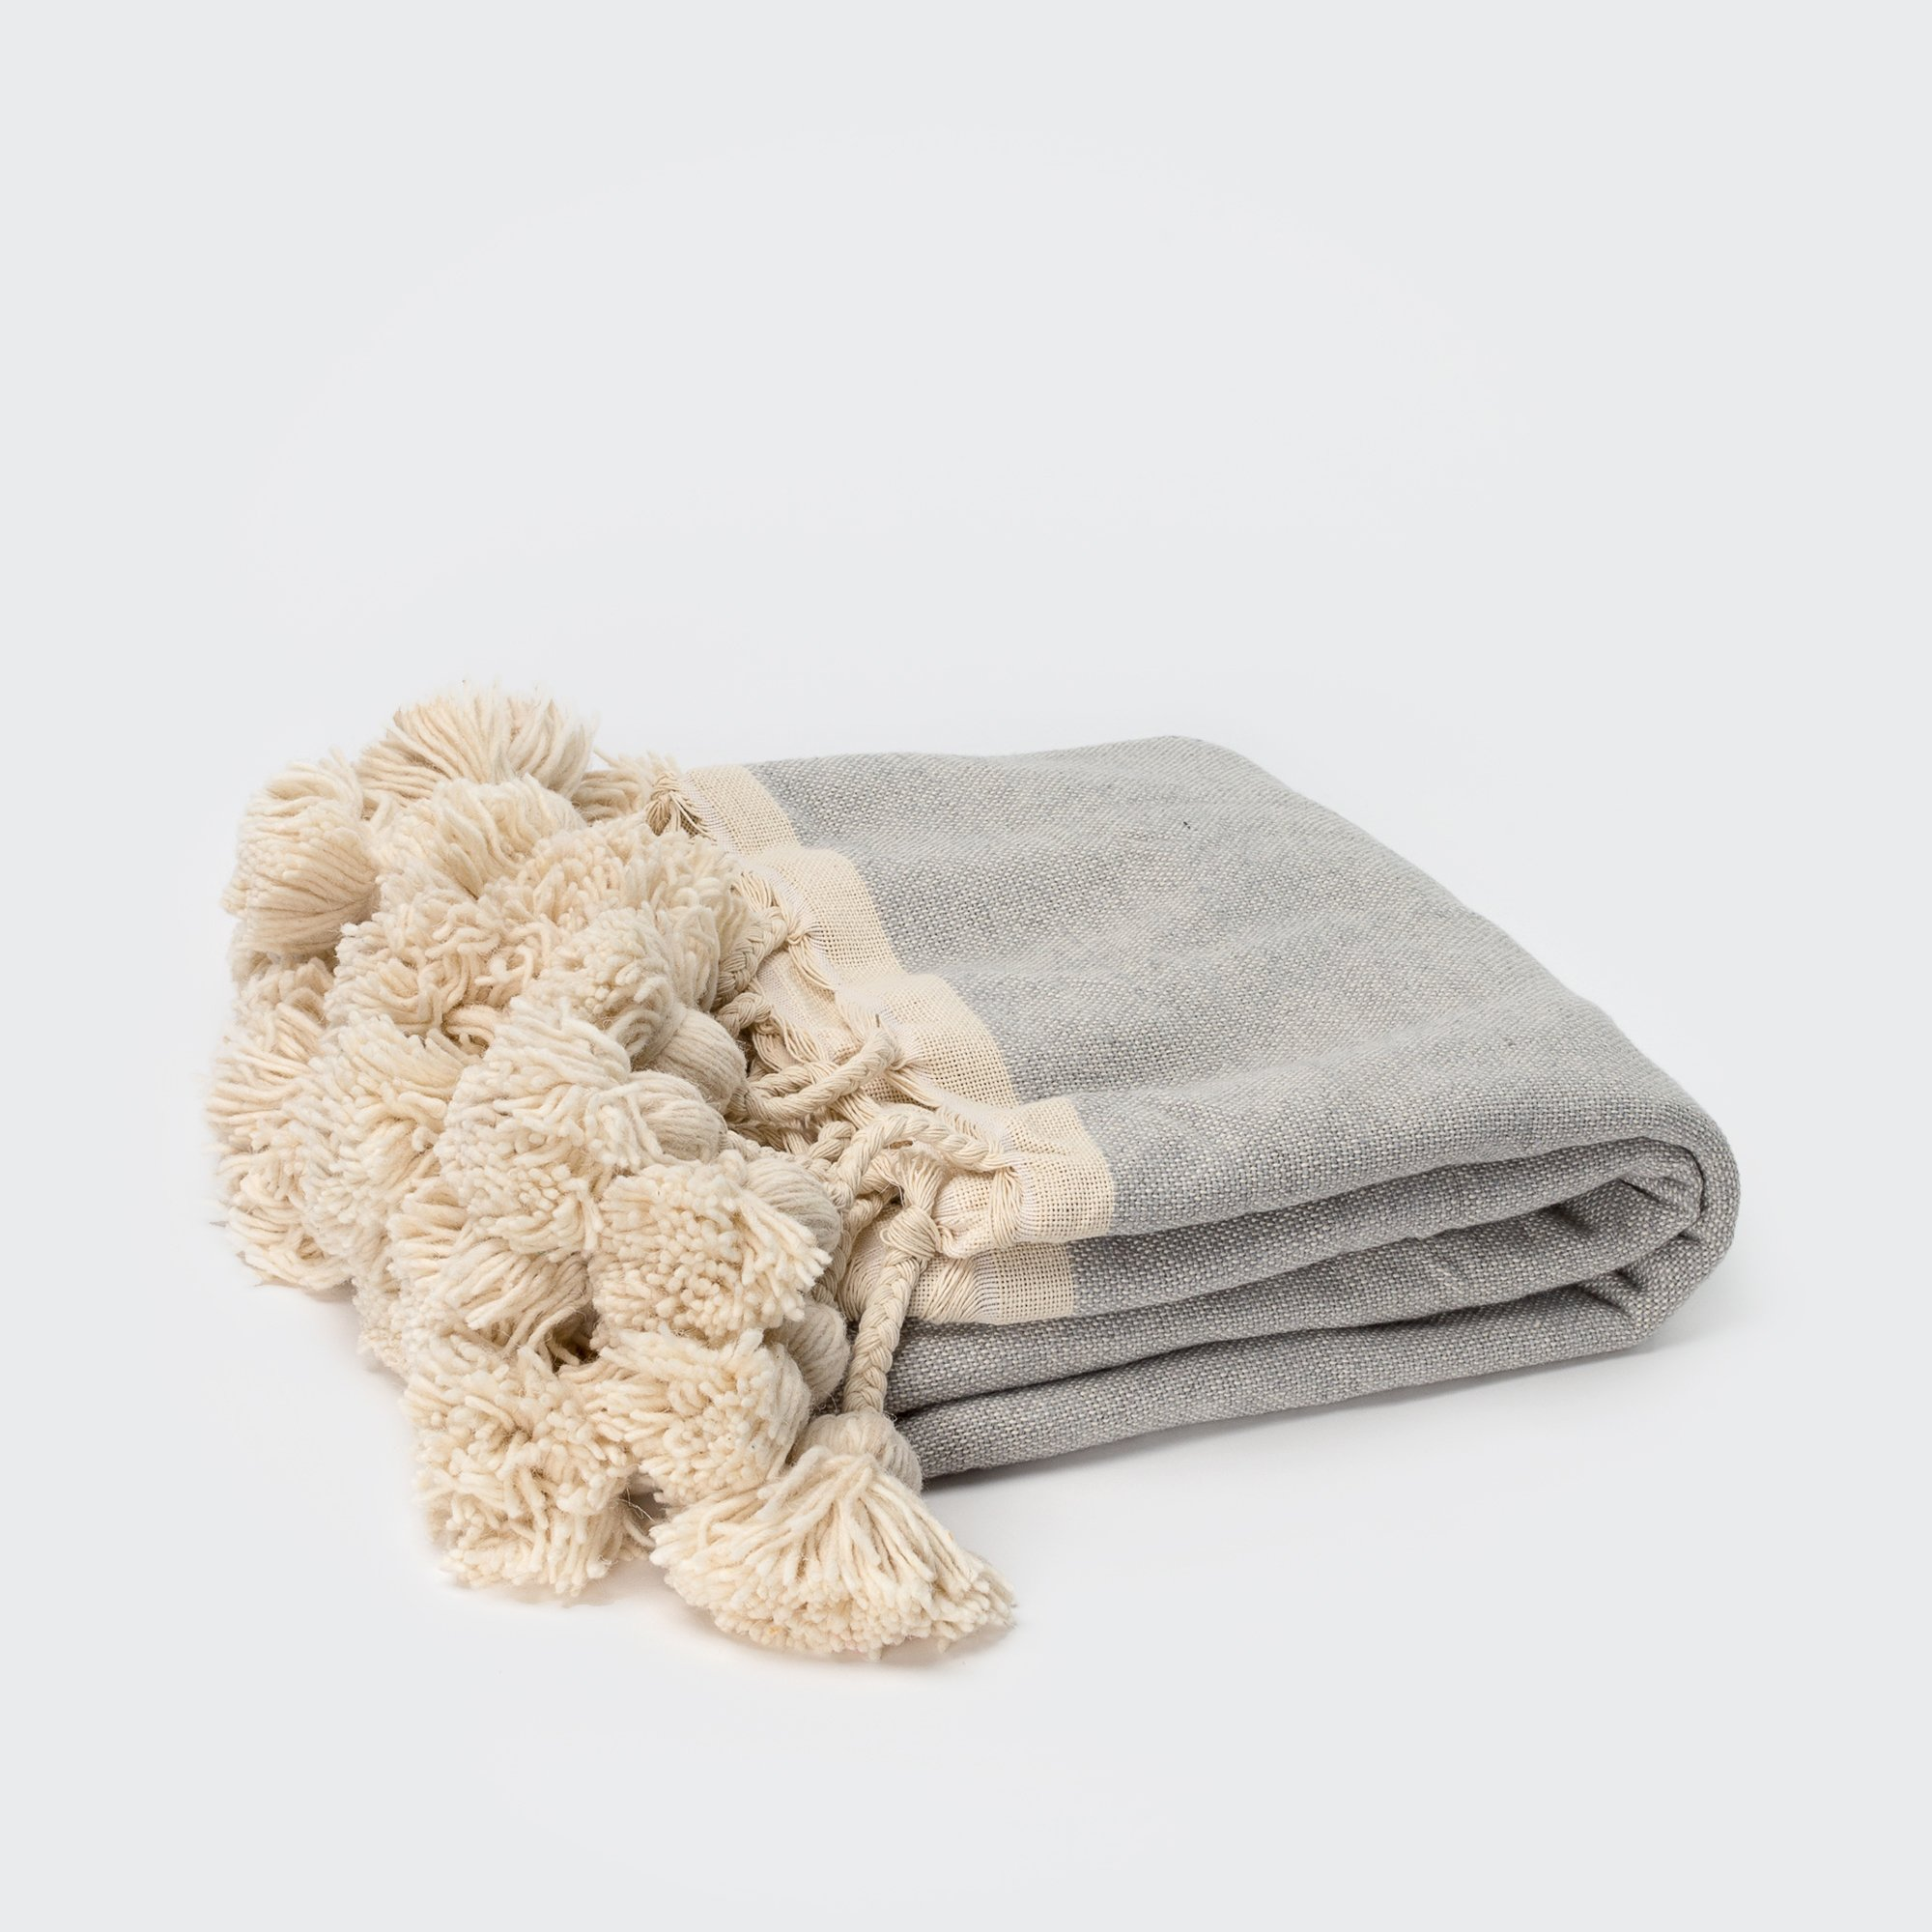 ALL-SORTS-OF-SHOPPE-MOROCCAN-BENDAOUD-THROW